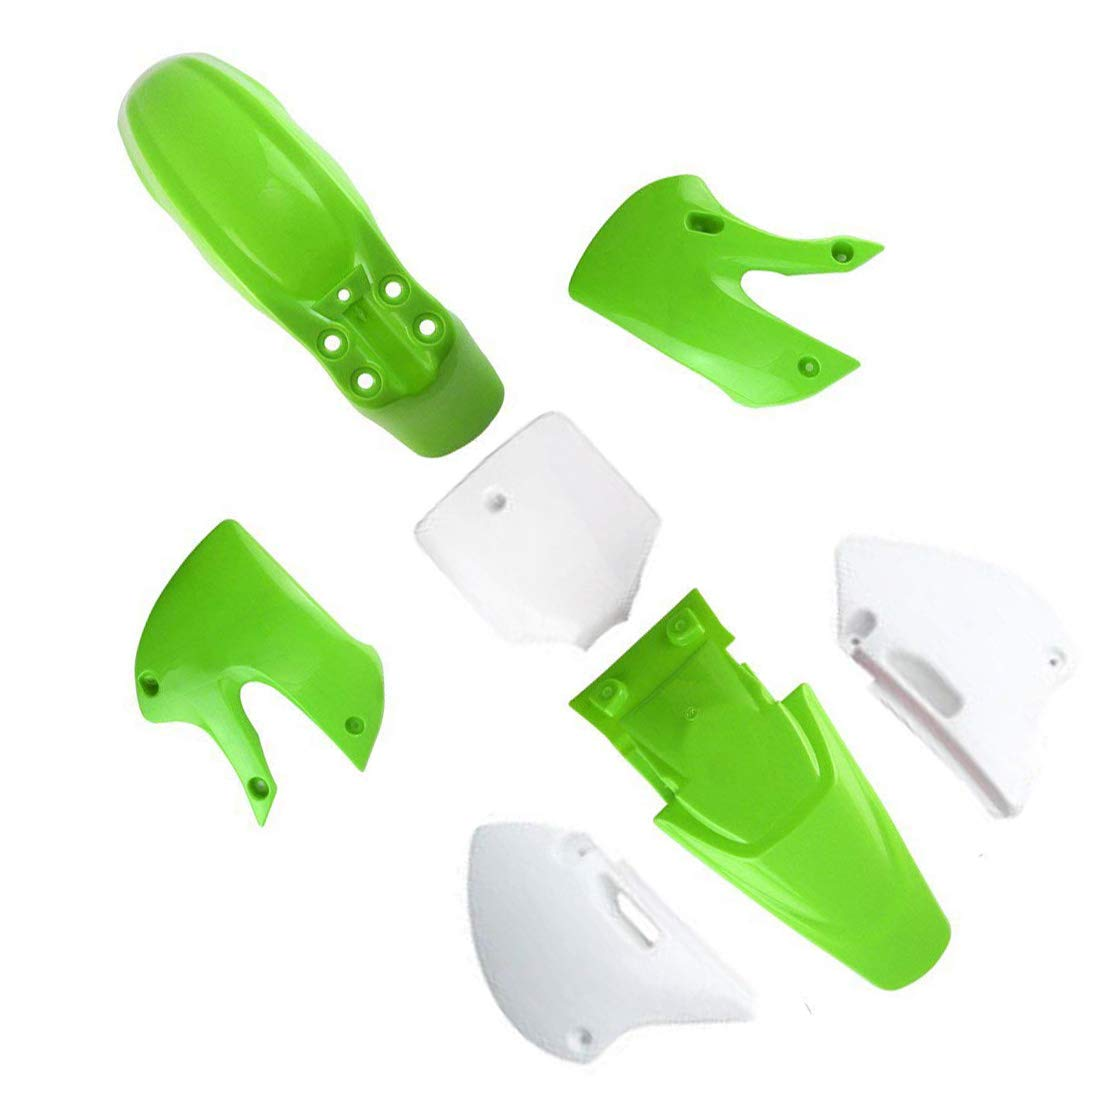 ZXTDR Motorcycle Dirt Bike Body Plastic Fender For SSR Coolster BBR Various Colors (4 green&3 white)